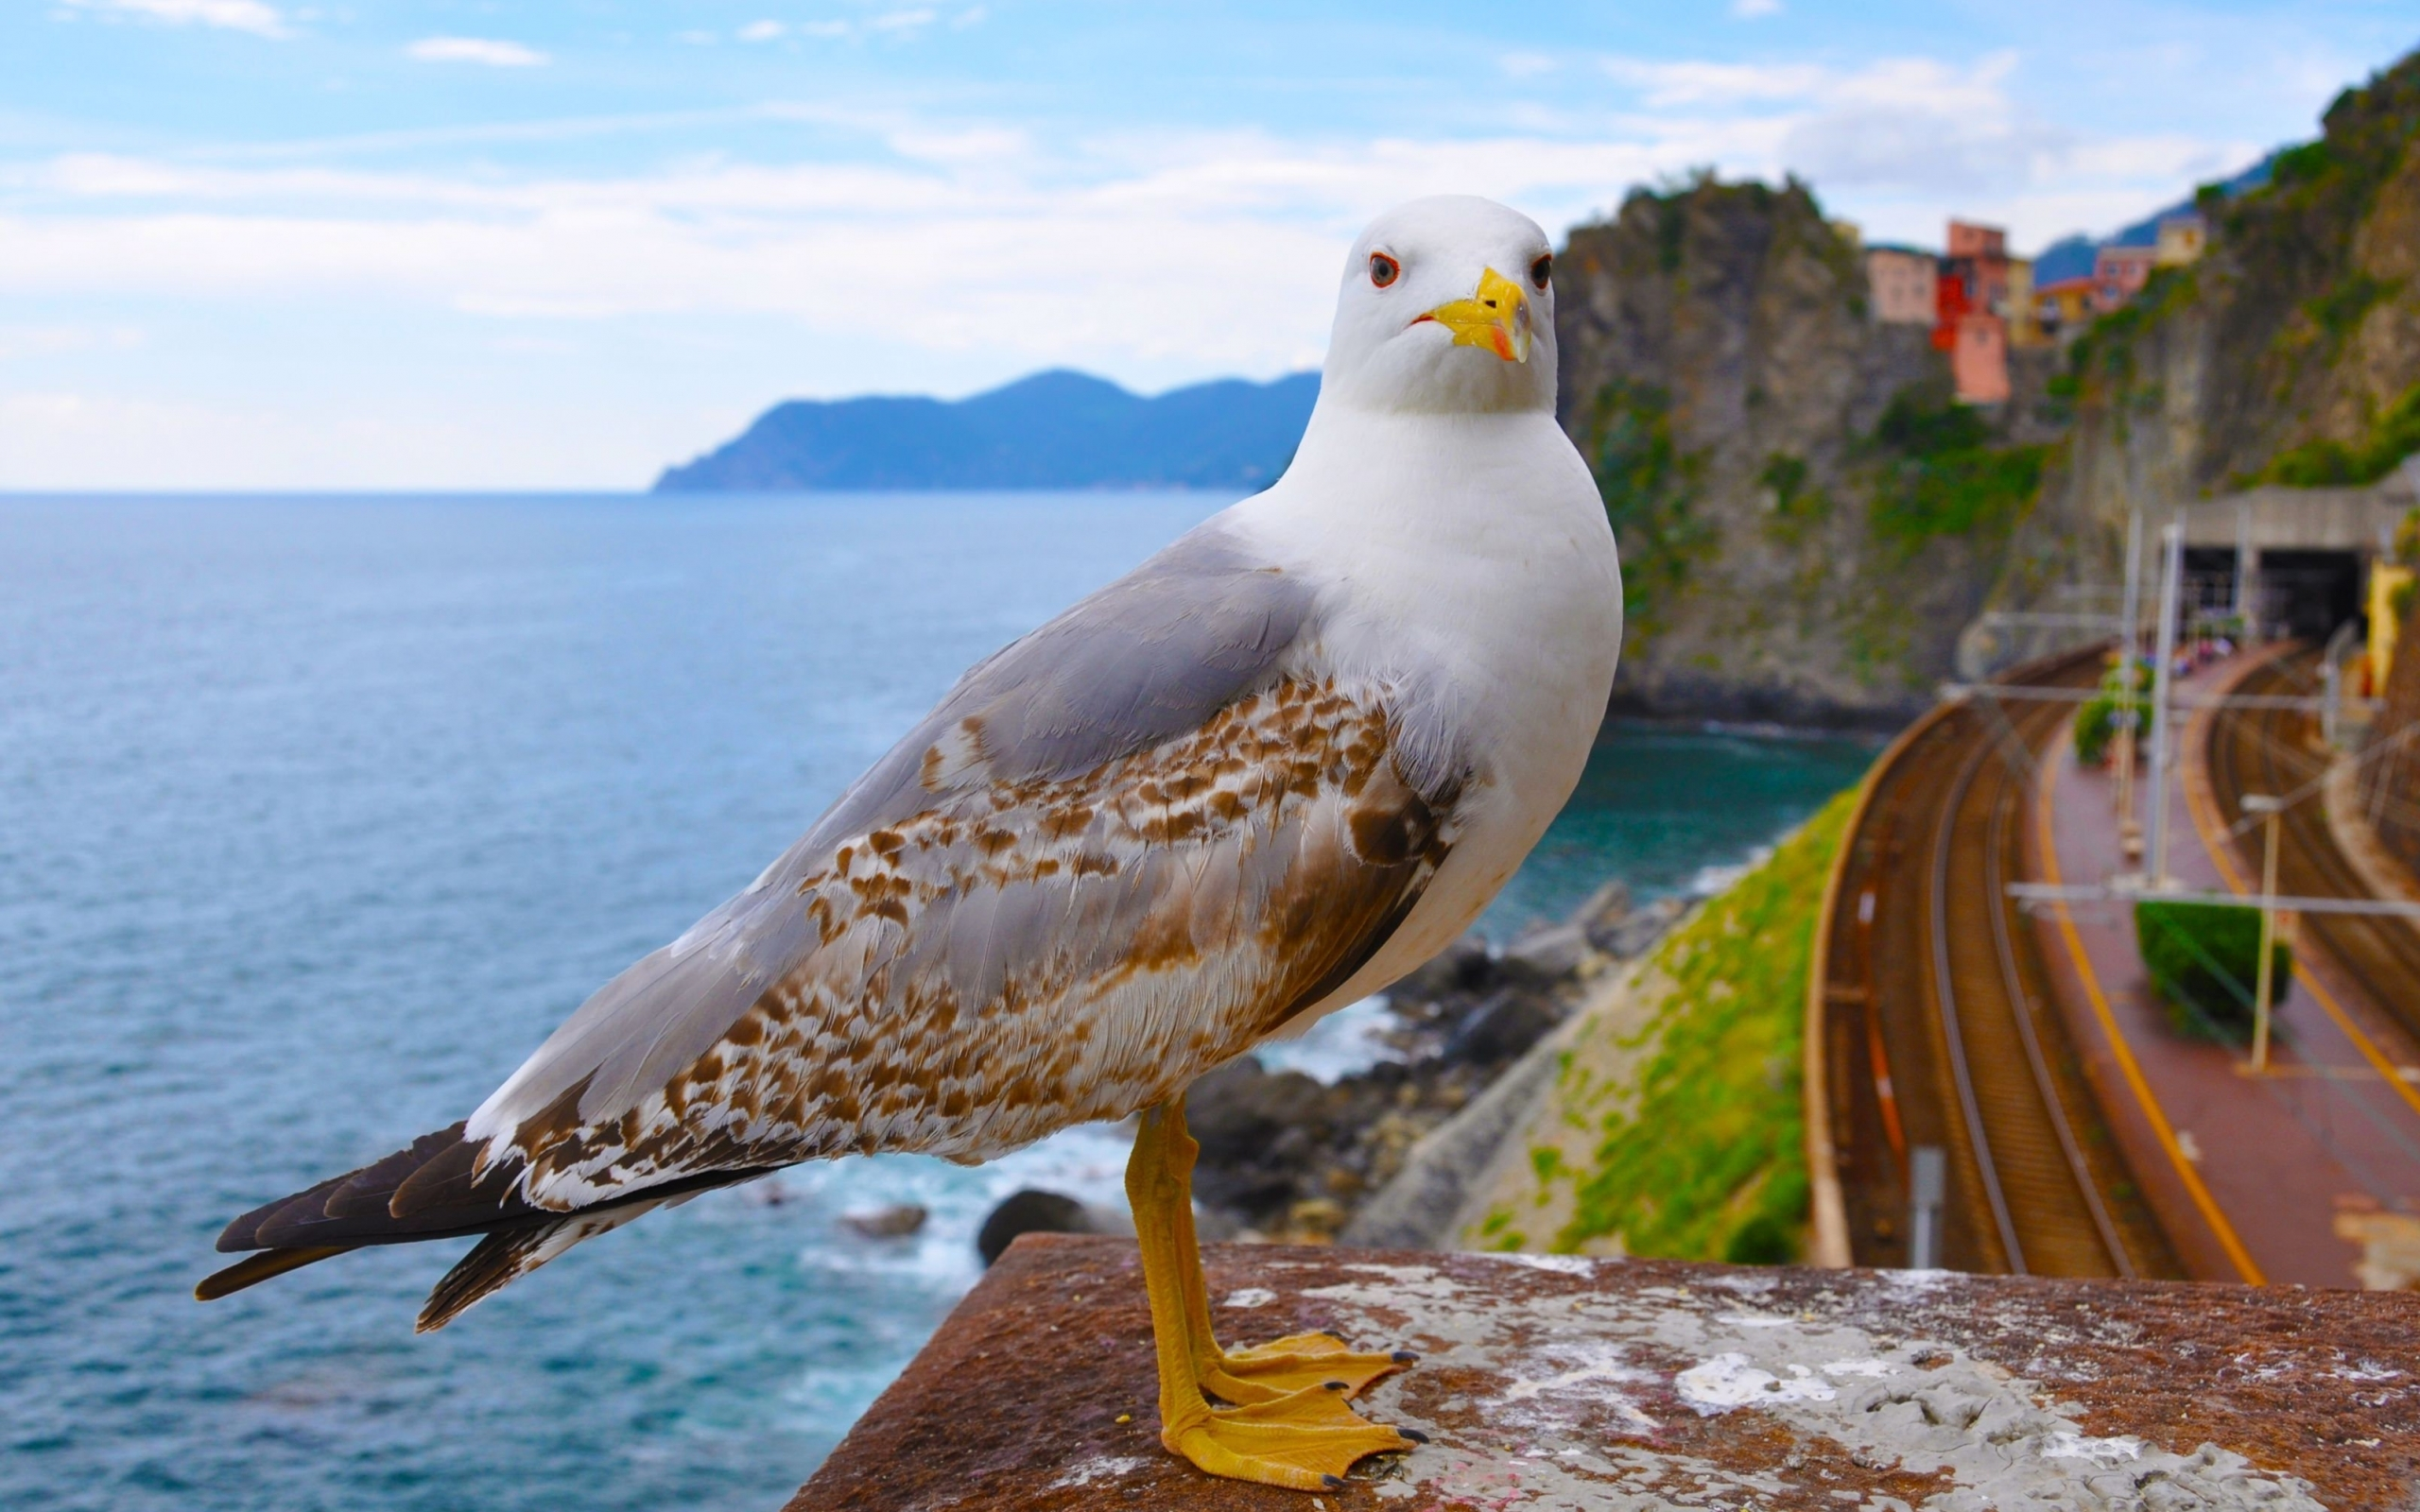 24665 download wallpaper Animals, Birds, Seagulls screensavers and pictures for free